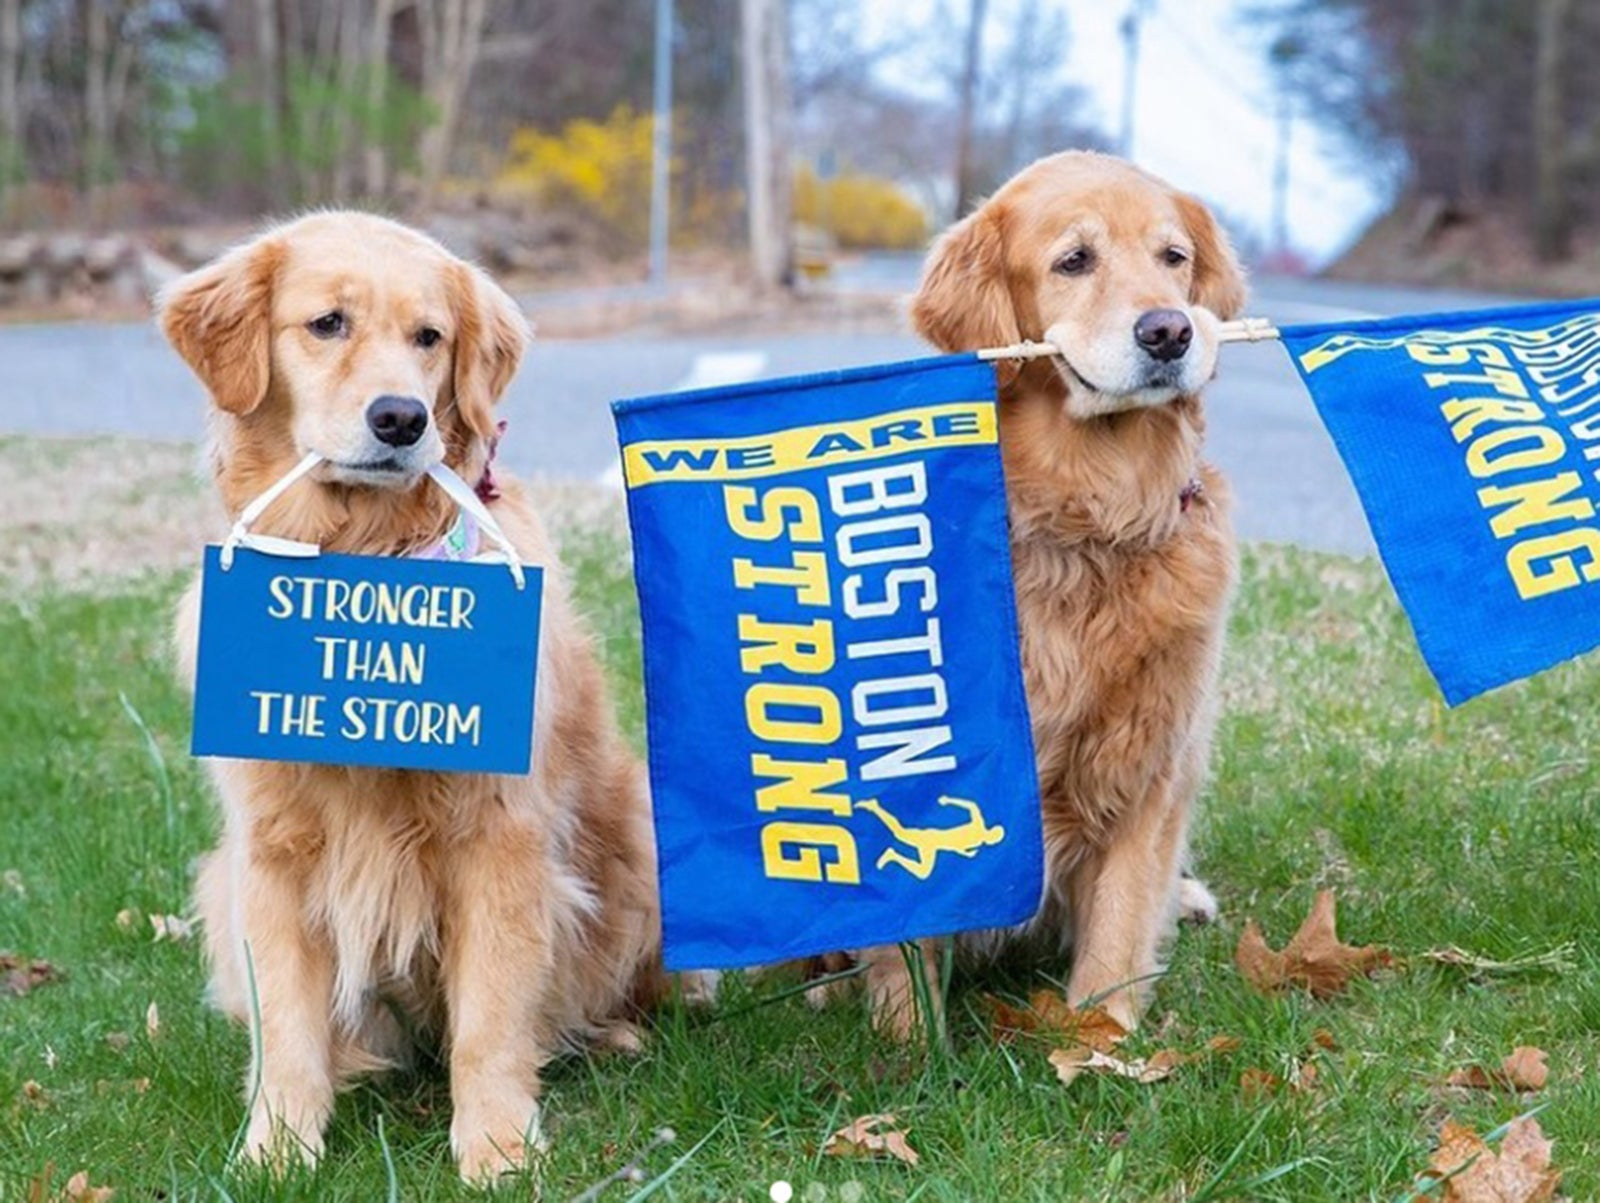 Penny and Spencer, the Marathon Monday dogs